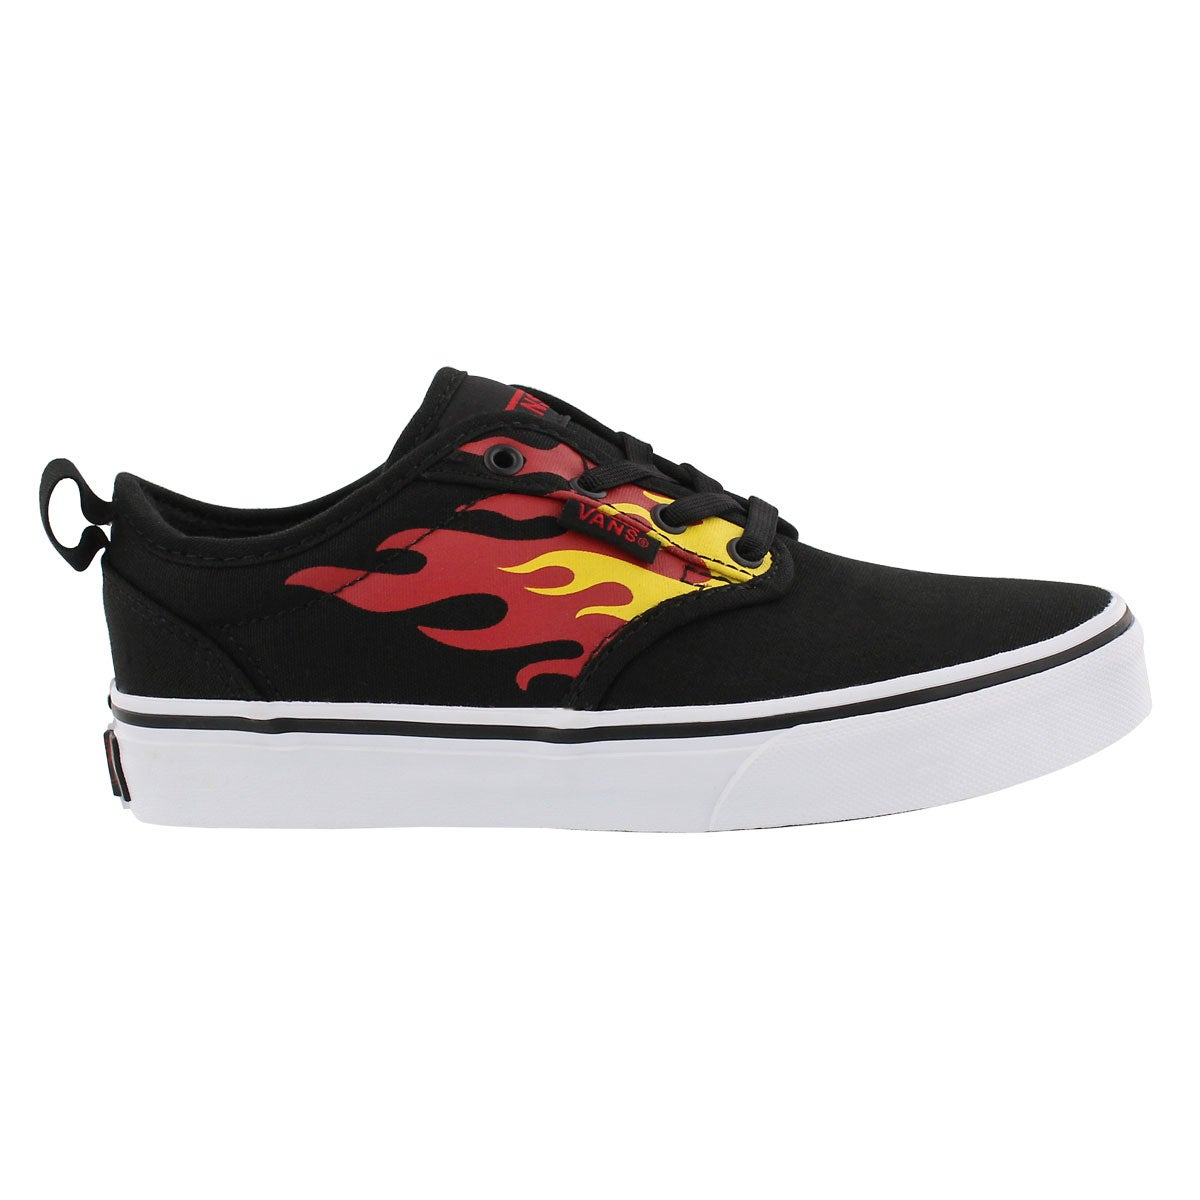 Bys Atwood blk/flame slip on sneaker